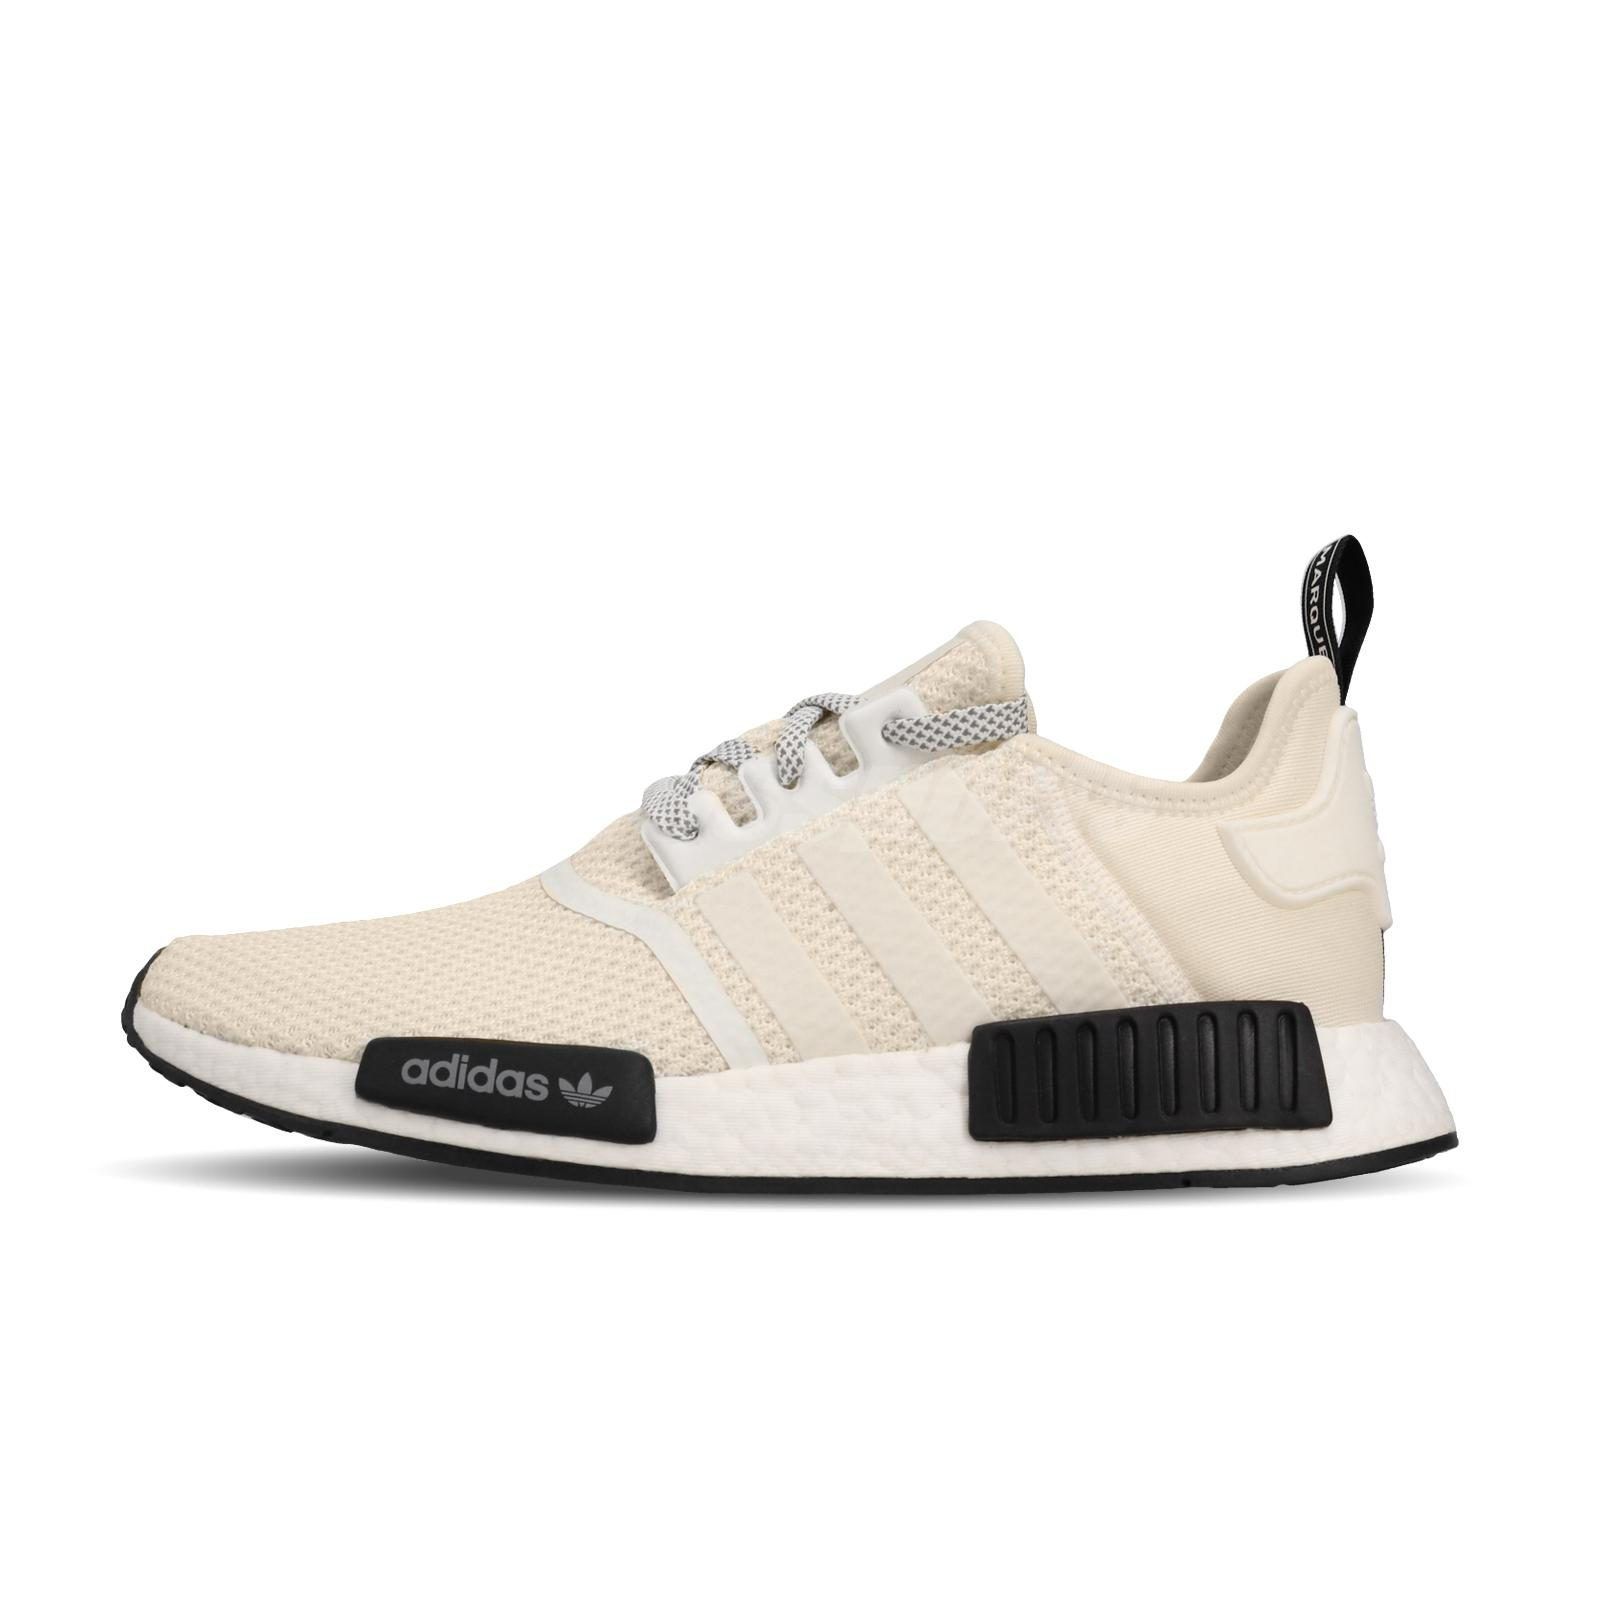 Details about adidas Originals NMD_R1 Boost Off White Ivory Black Men Running Shoes D97215